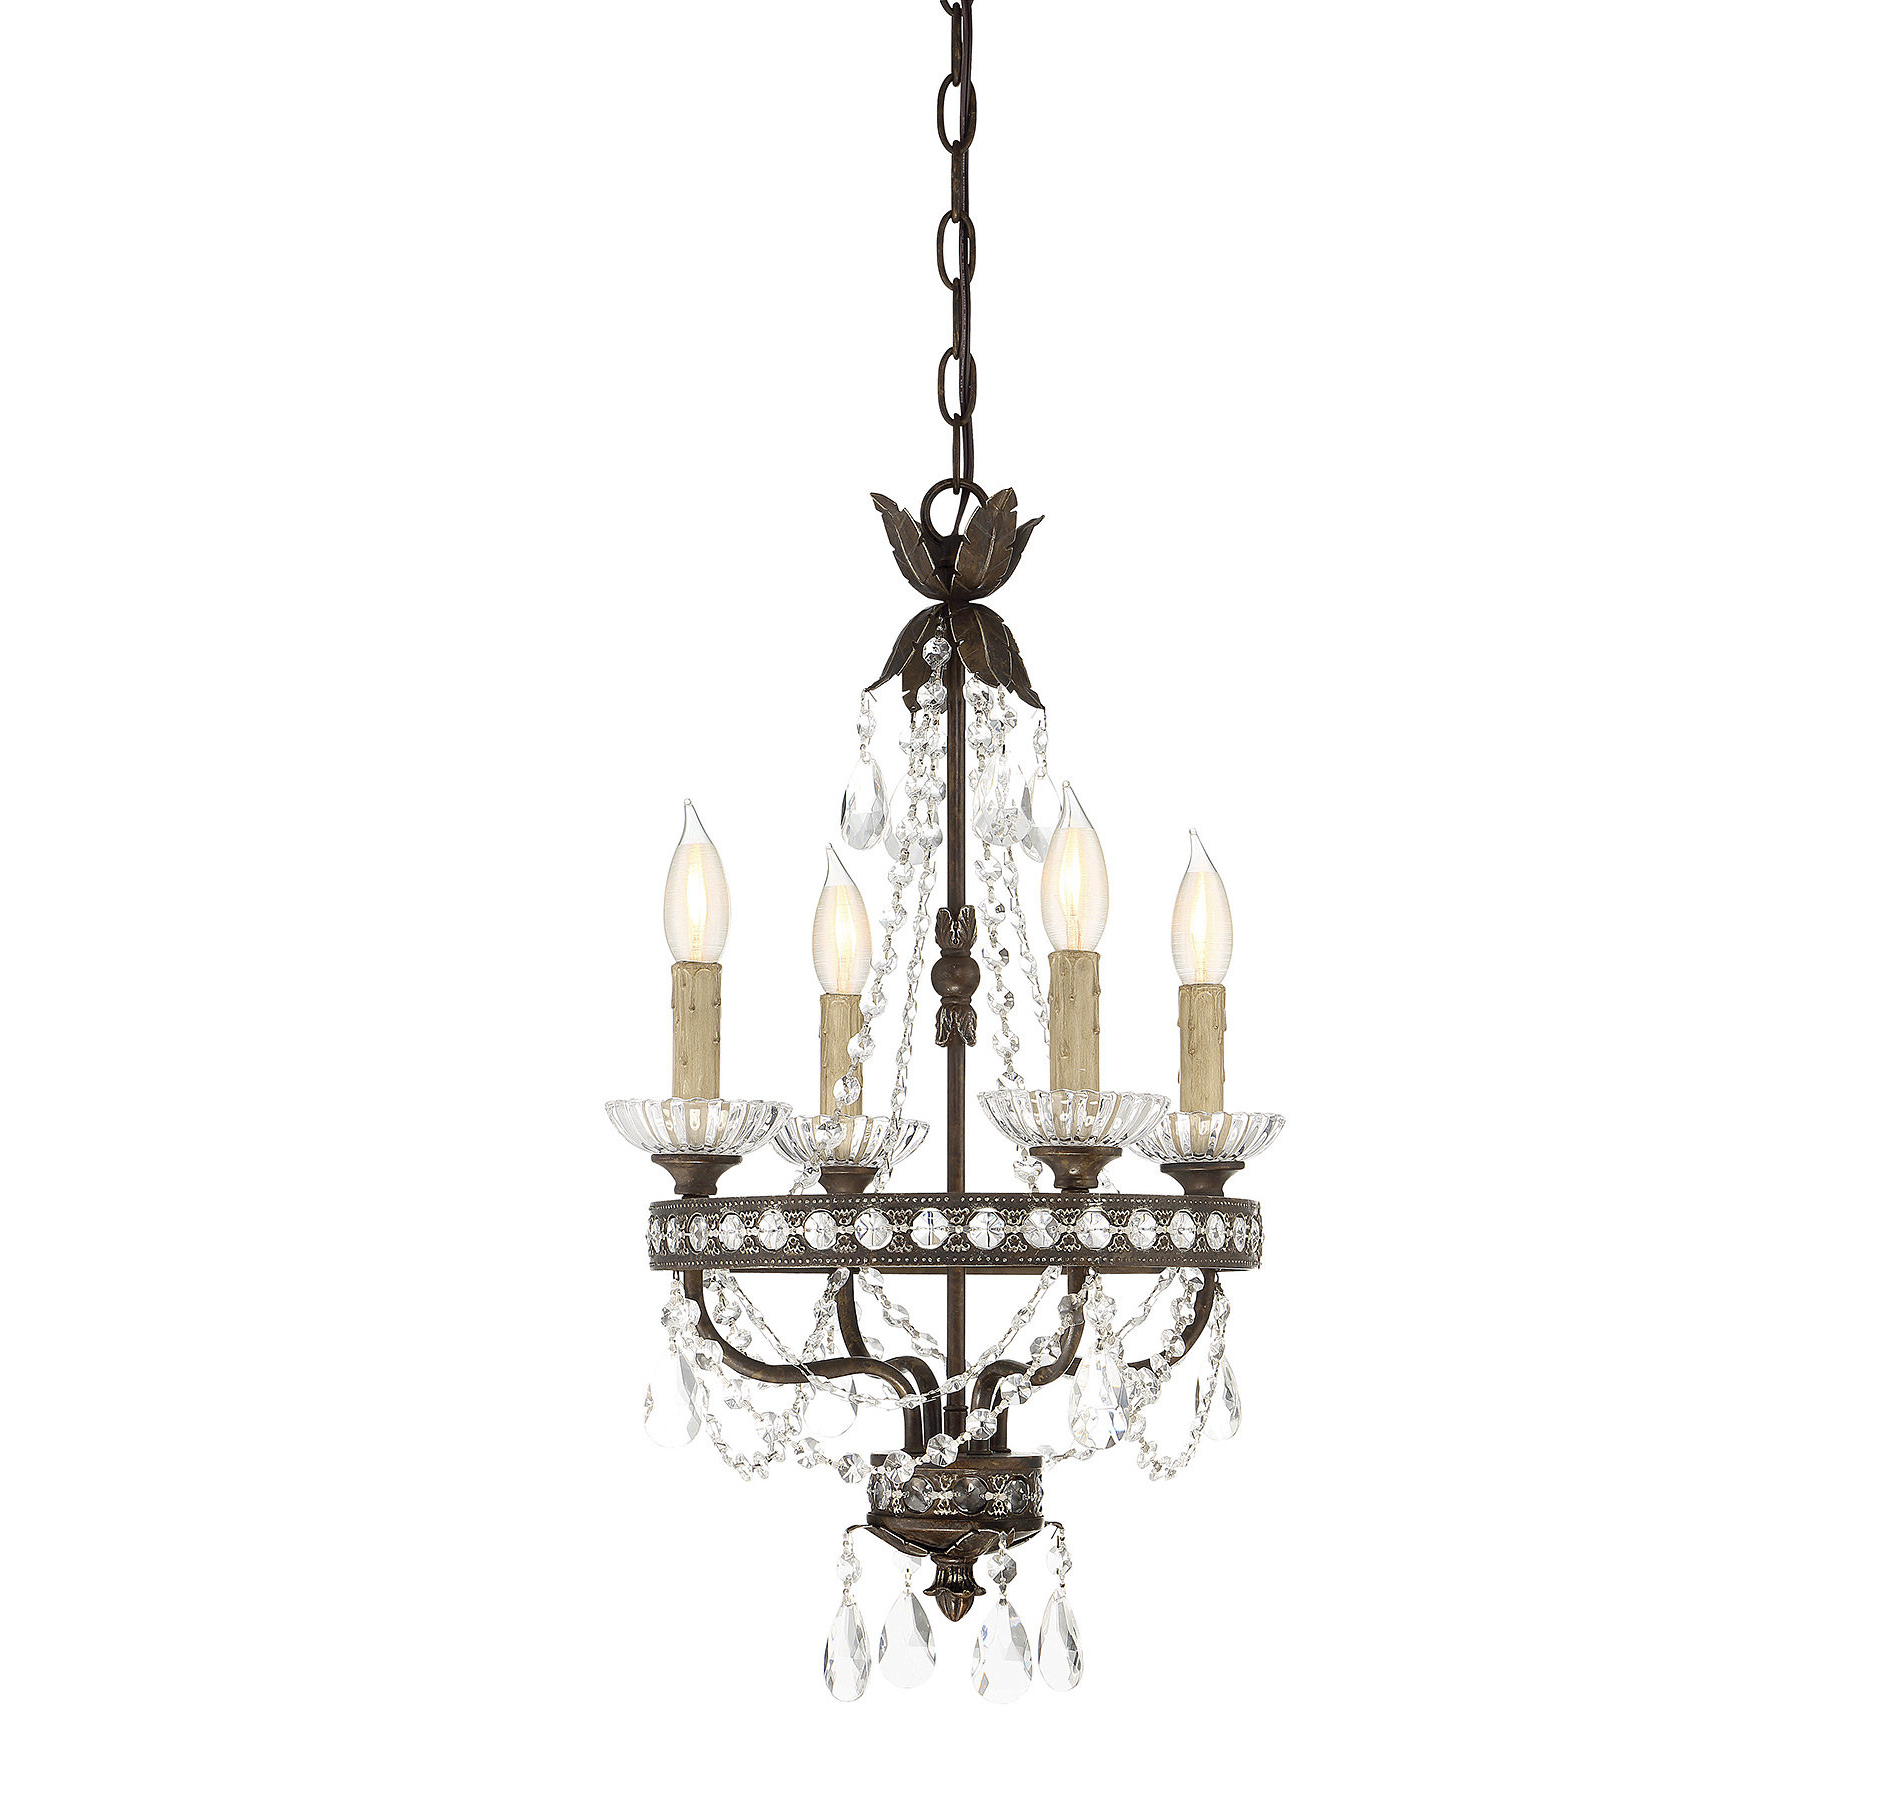 Current Hesse 5 Light Candle Style Chandeliers Pertaining To Lefler 4 Light Candle Style Chandelier (View 8 of 25)